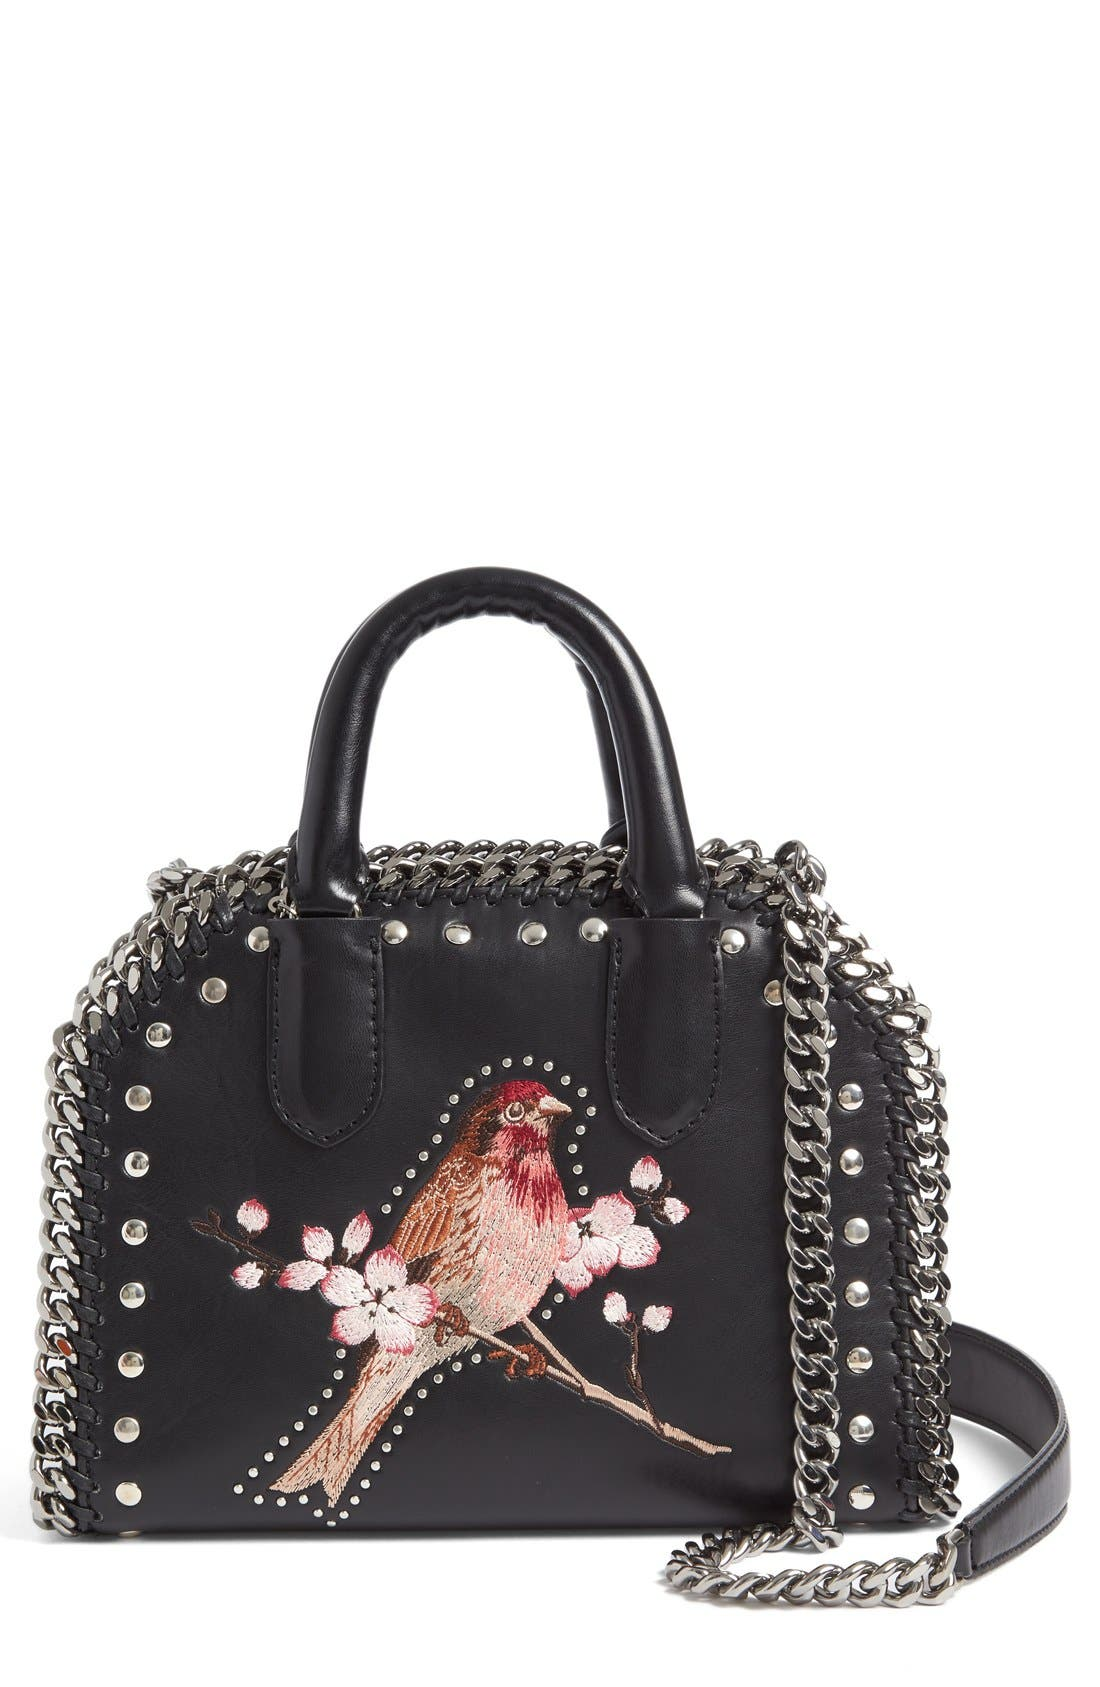 Alternate Image 1 Selected - Stella McCartney Mini Falabella Embroidered Faux Leather Tote